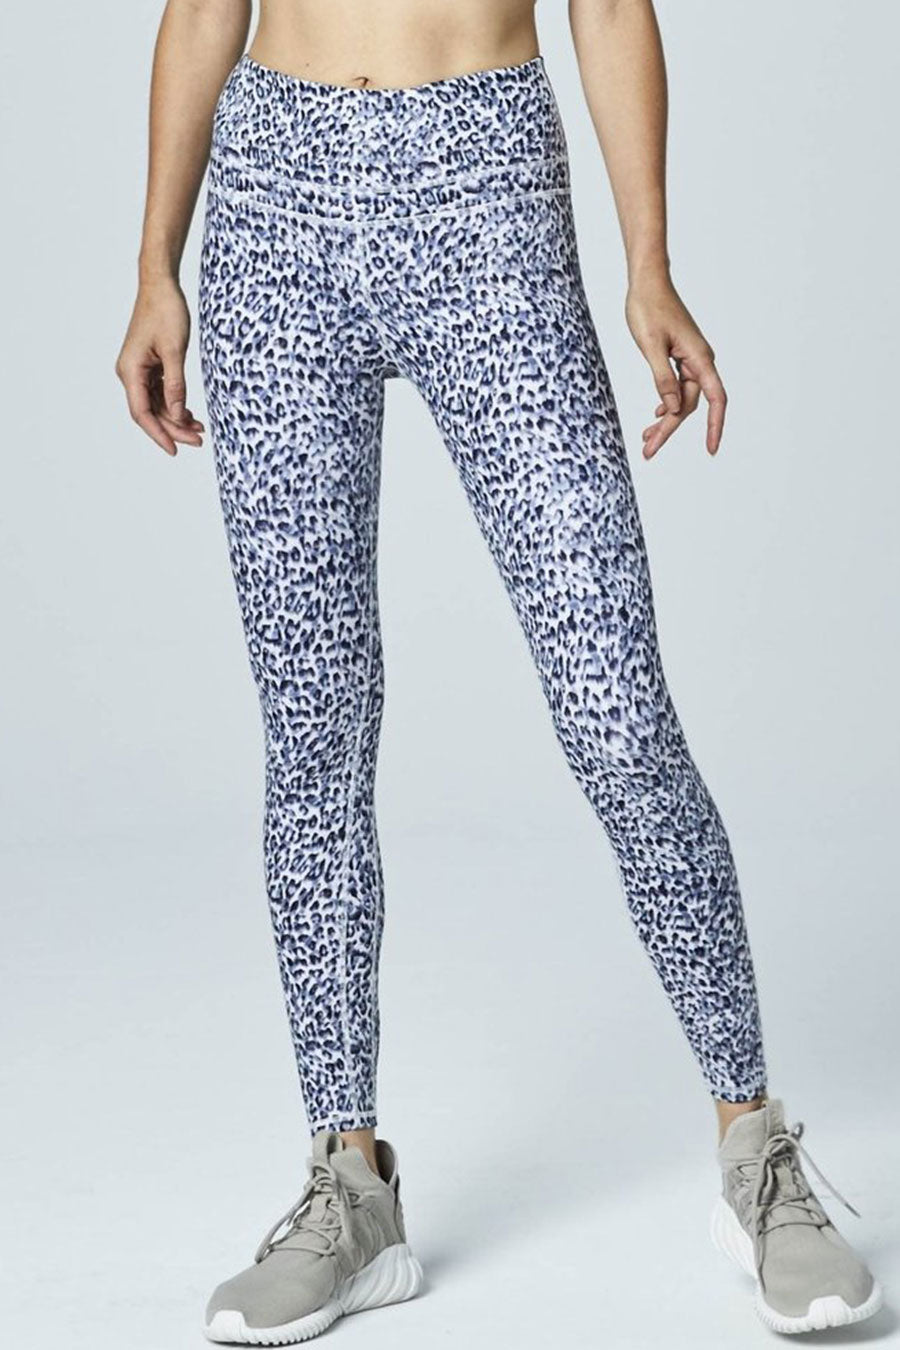 Varley Biona Tight - Distorted Cheetah - Sculptique